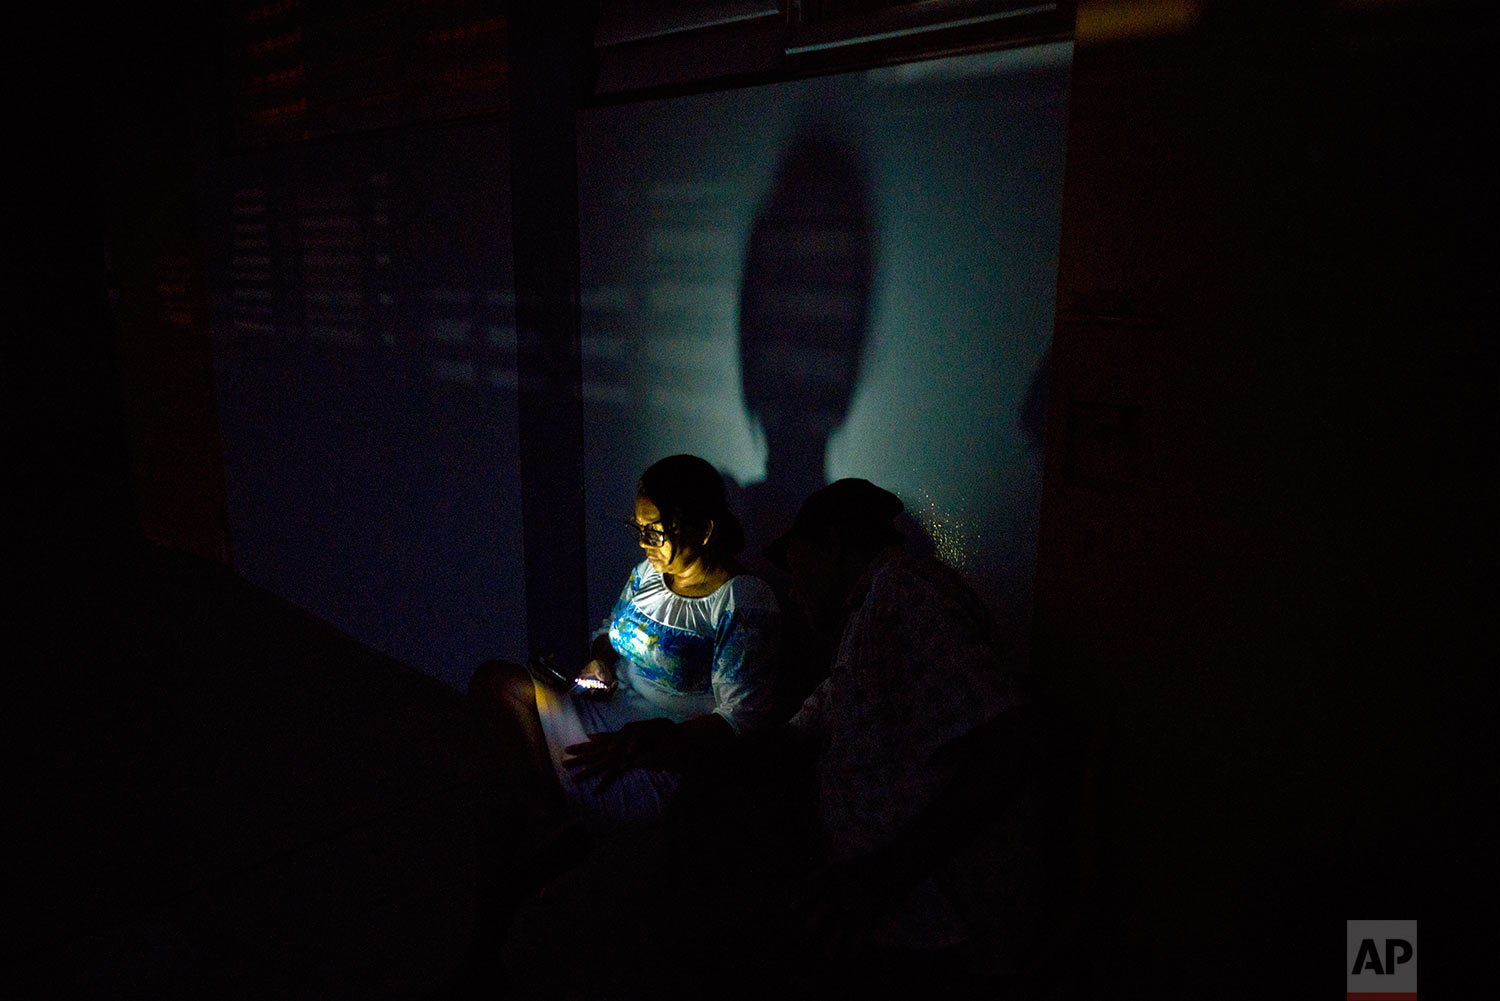 In this Thursday, Oct. 12, 2017 photo, a woman left homeless by Hurricane Maria uses her cell phone at a school-turned-shelter that does not have electricity in Toa Baja, Puerto Rico. (AP Photo/Ramon Espinosa)